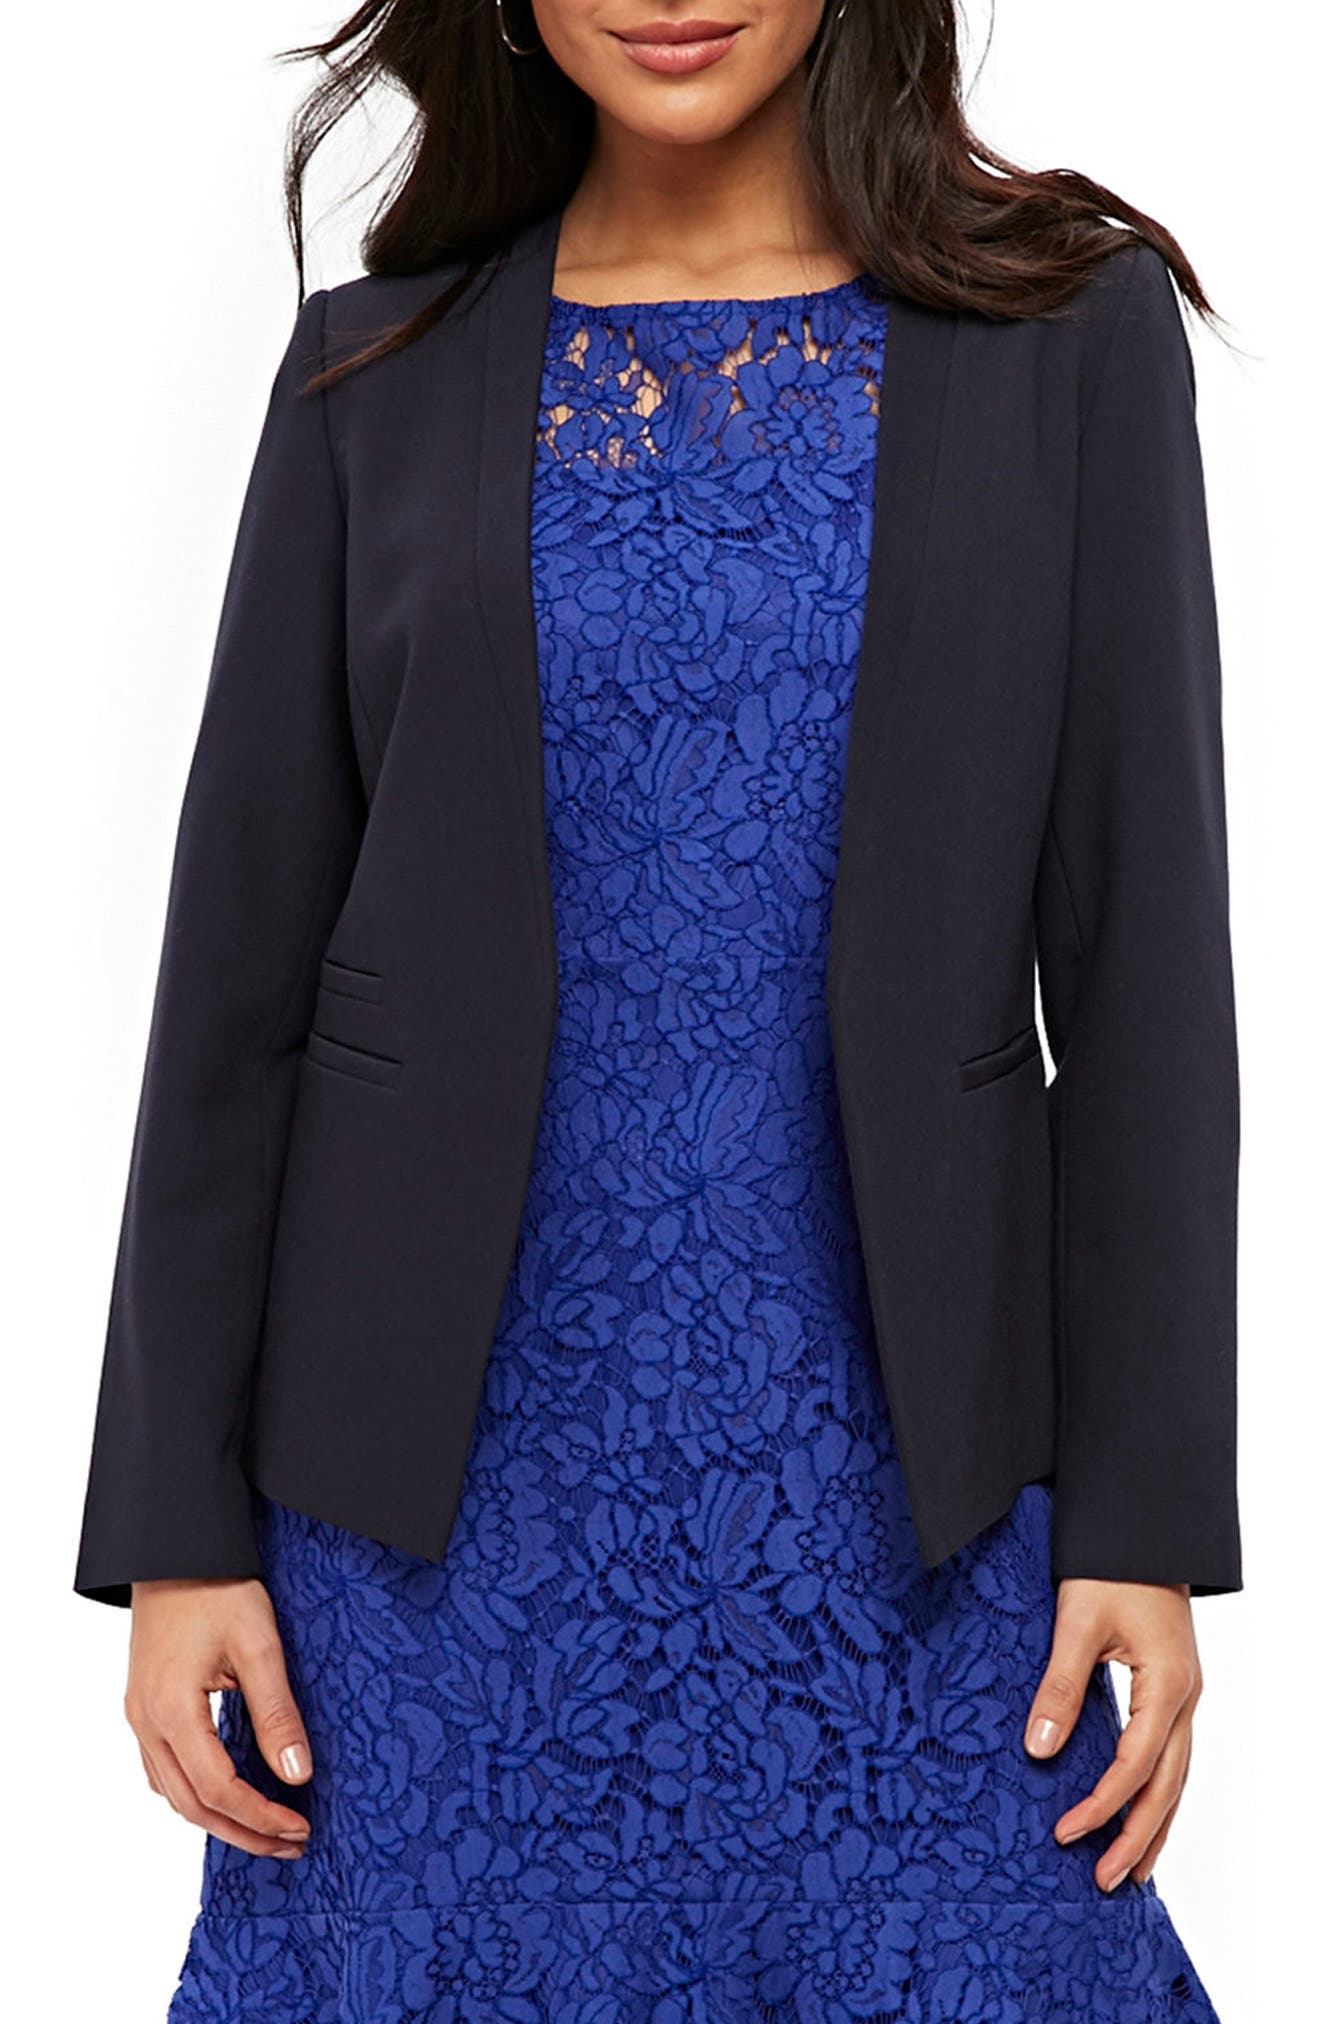 Giglio Edge to Edge Jacket,                             Main thumbnail 1, color,                             Navy Blue